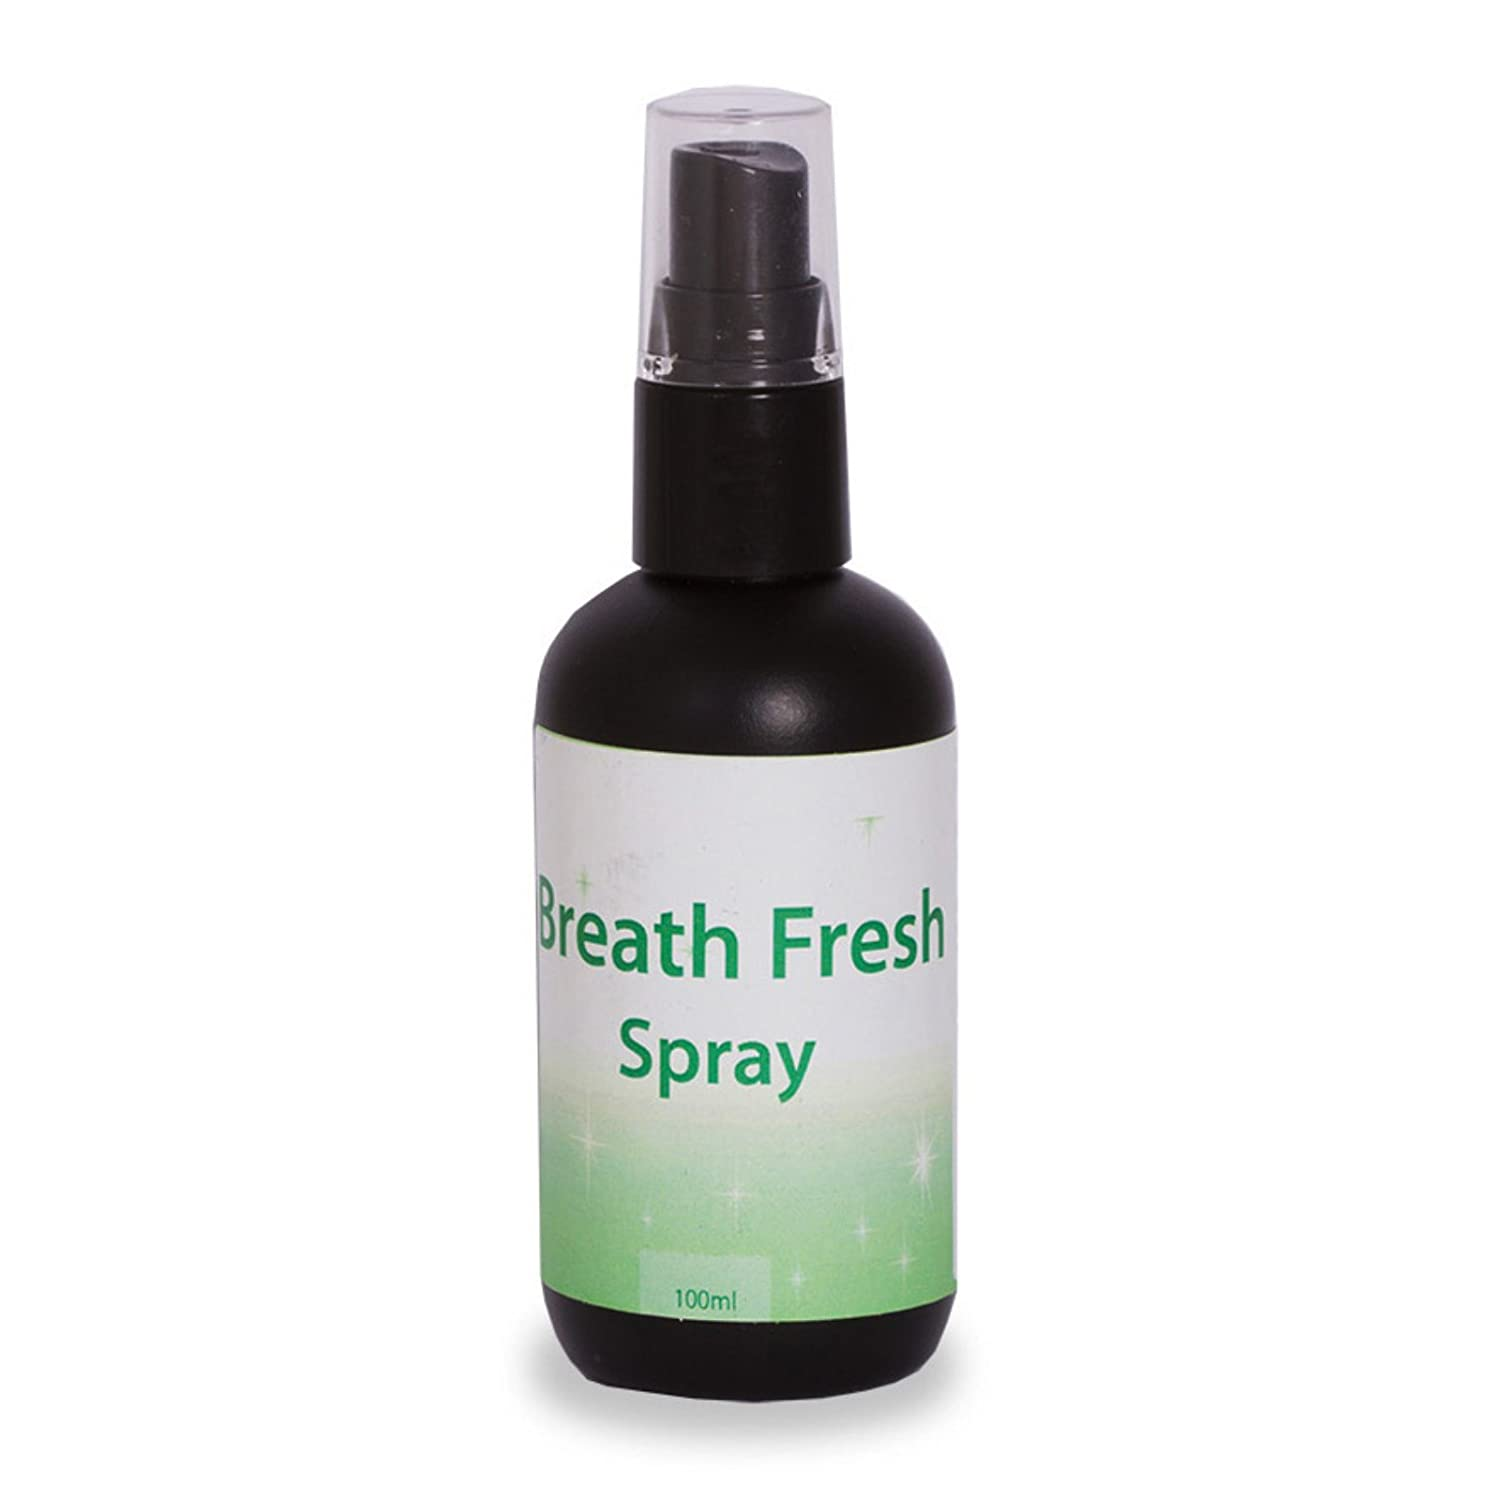 Breath Fresh Spray Fresh and Confident try the Best